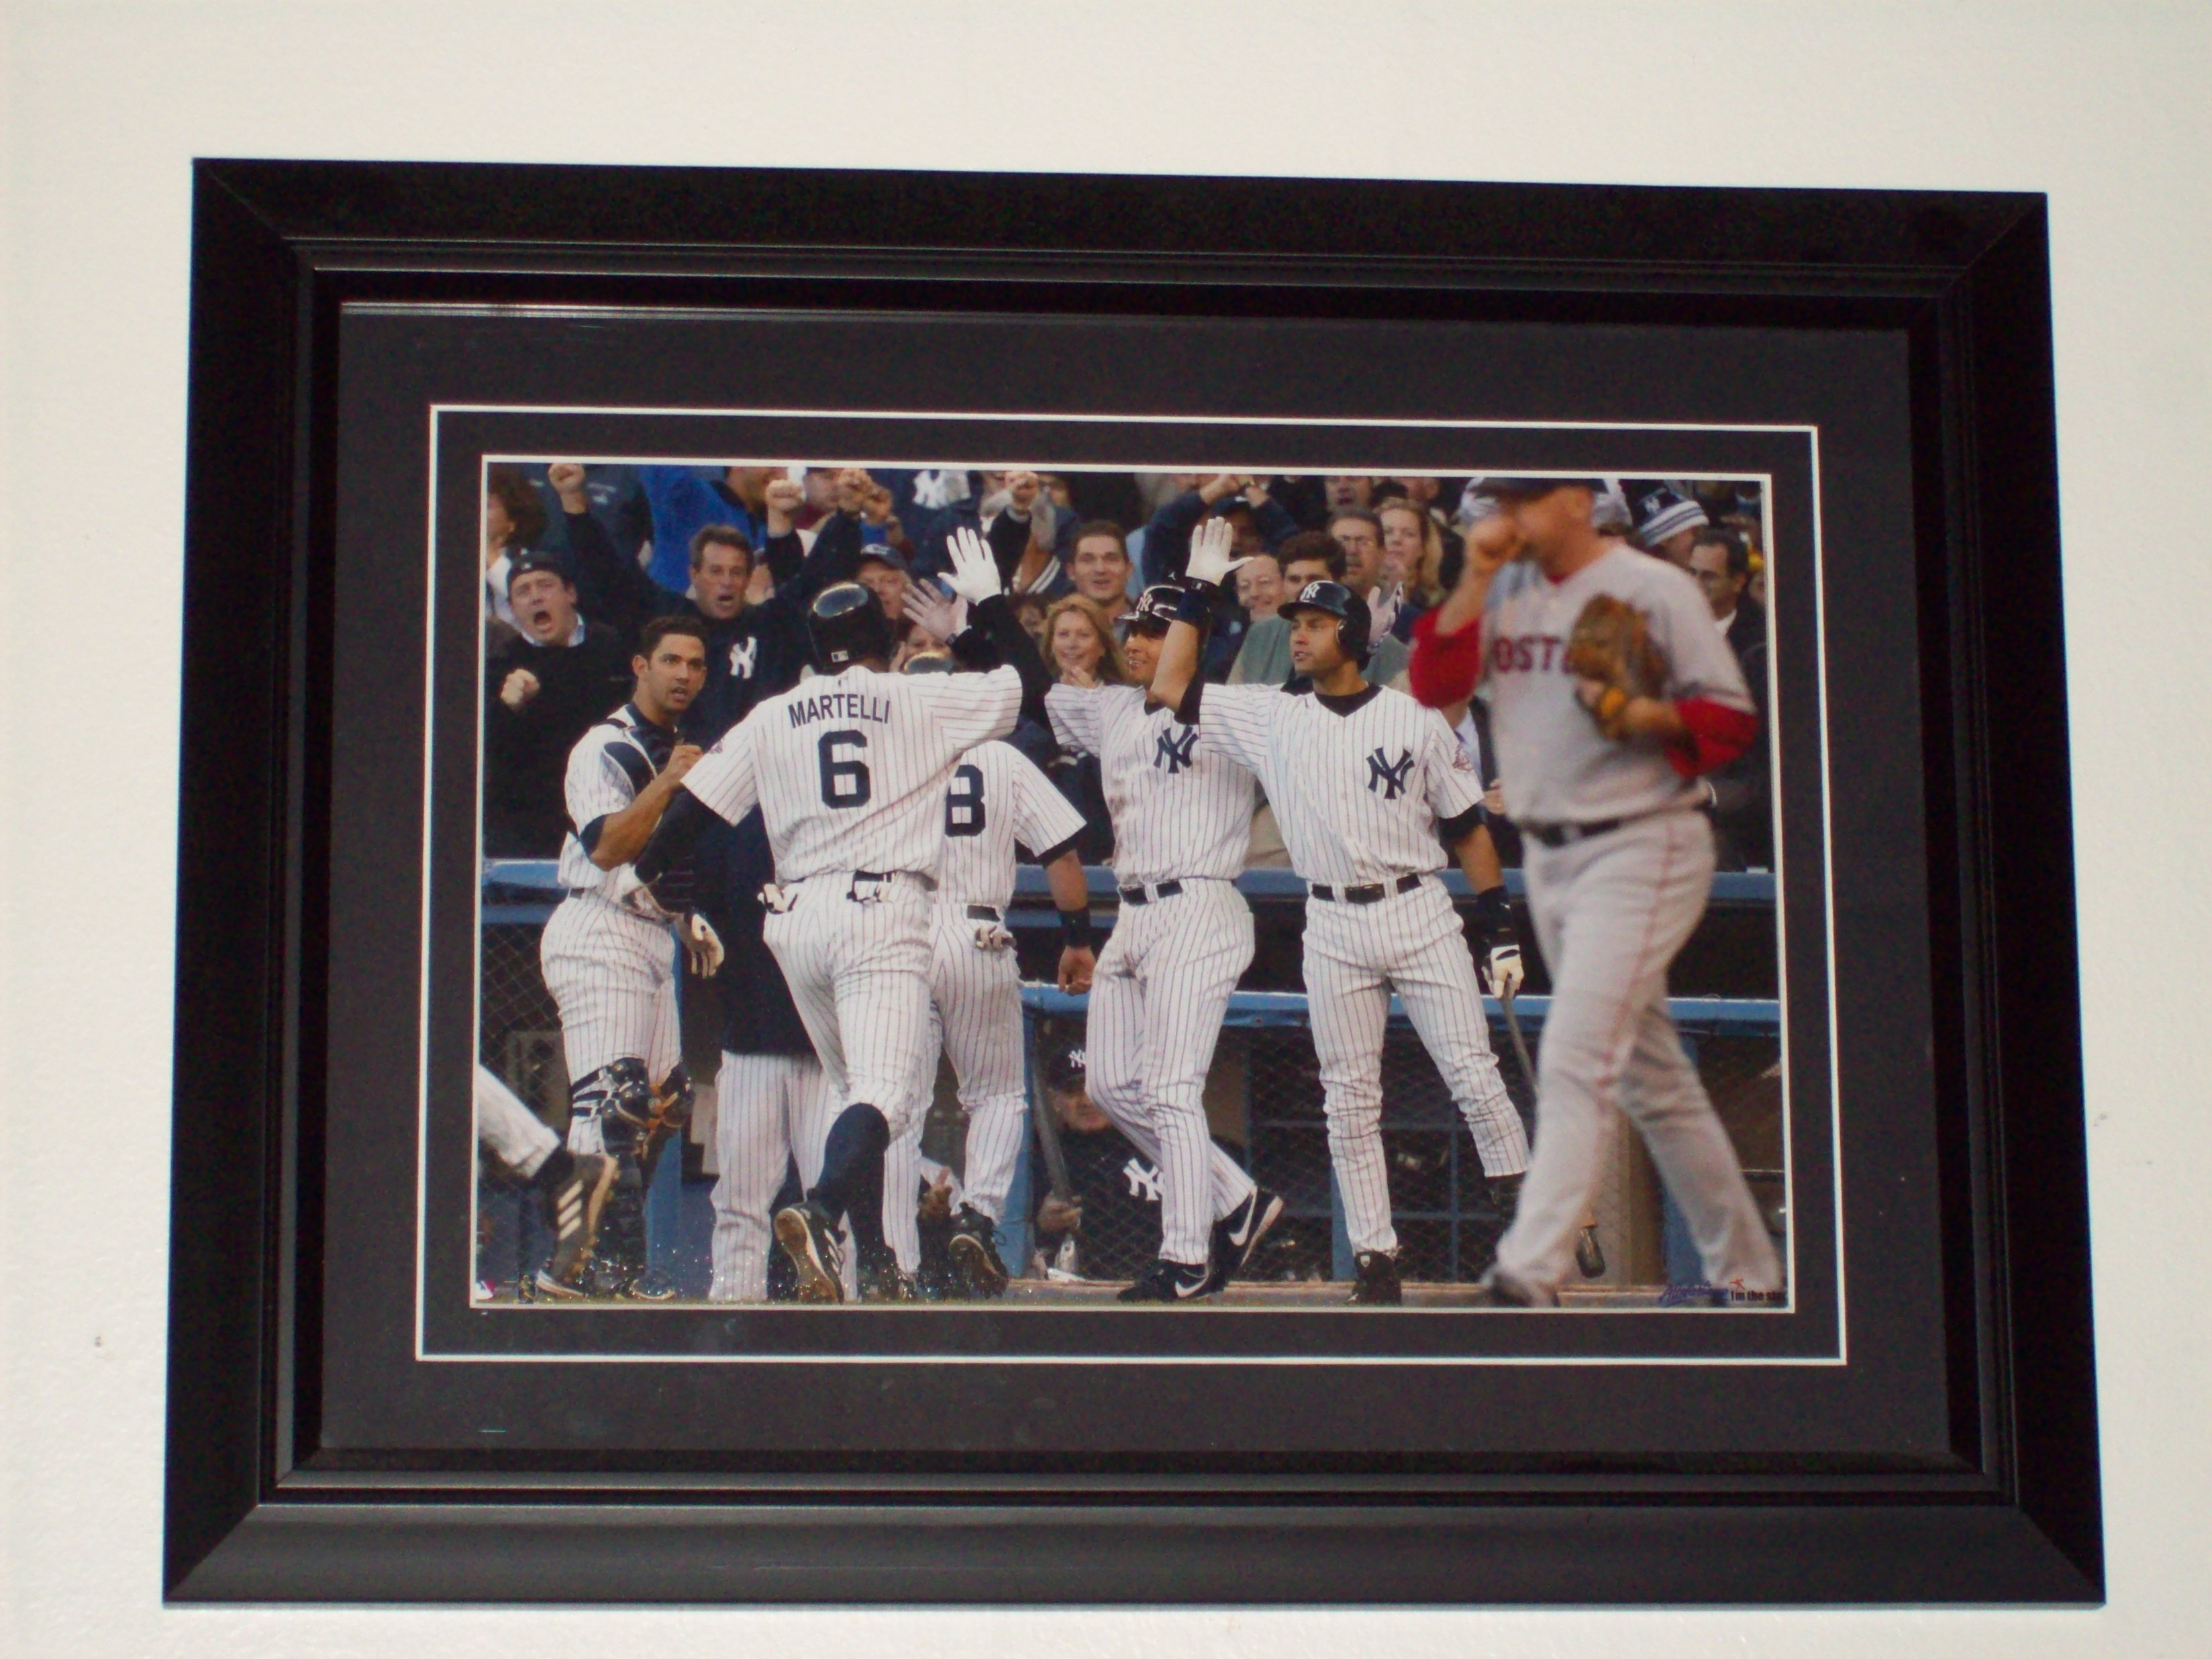 My personalized Yankee photo, one of my birthday gifts in 2007